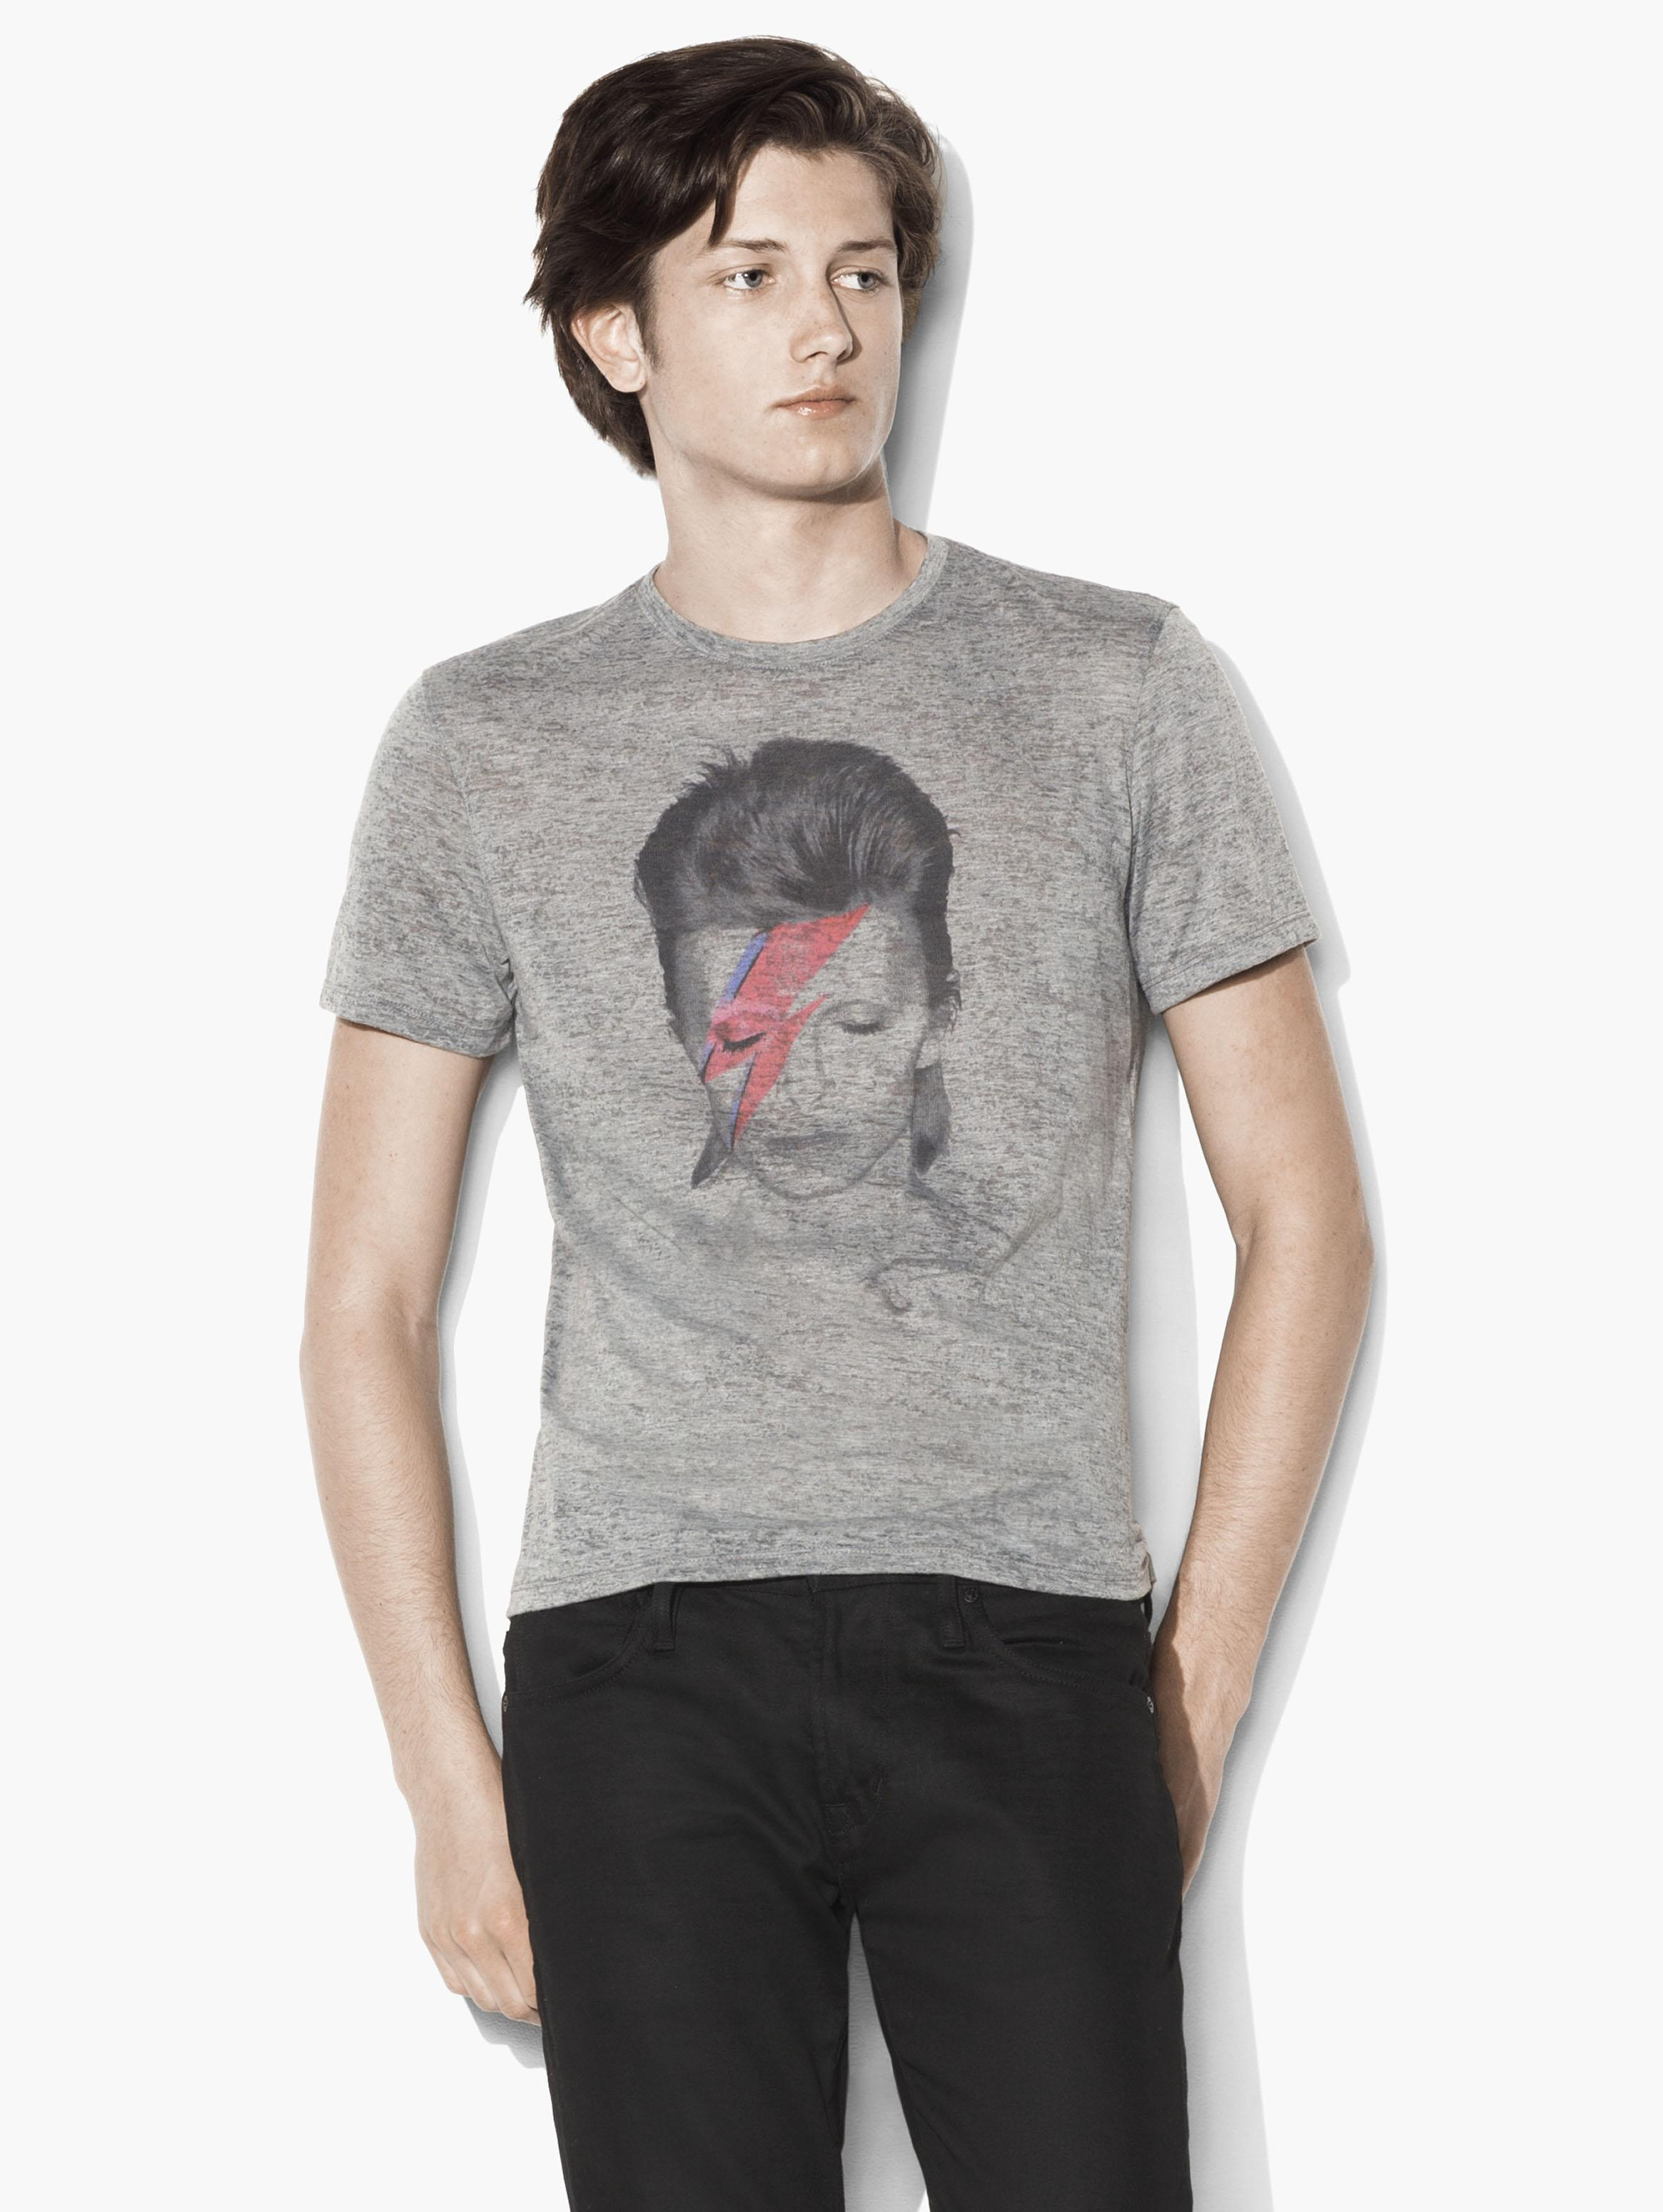 David Bowie Portrait Tee